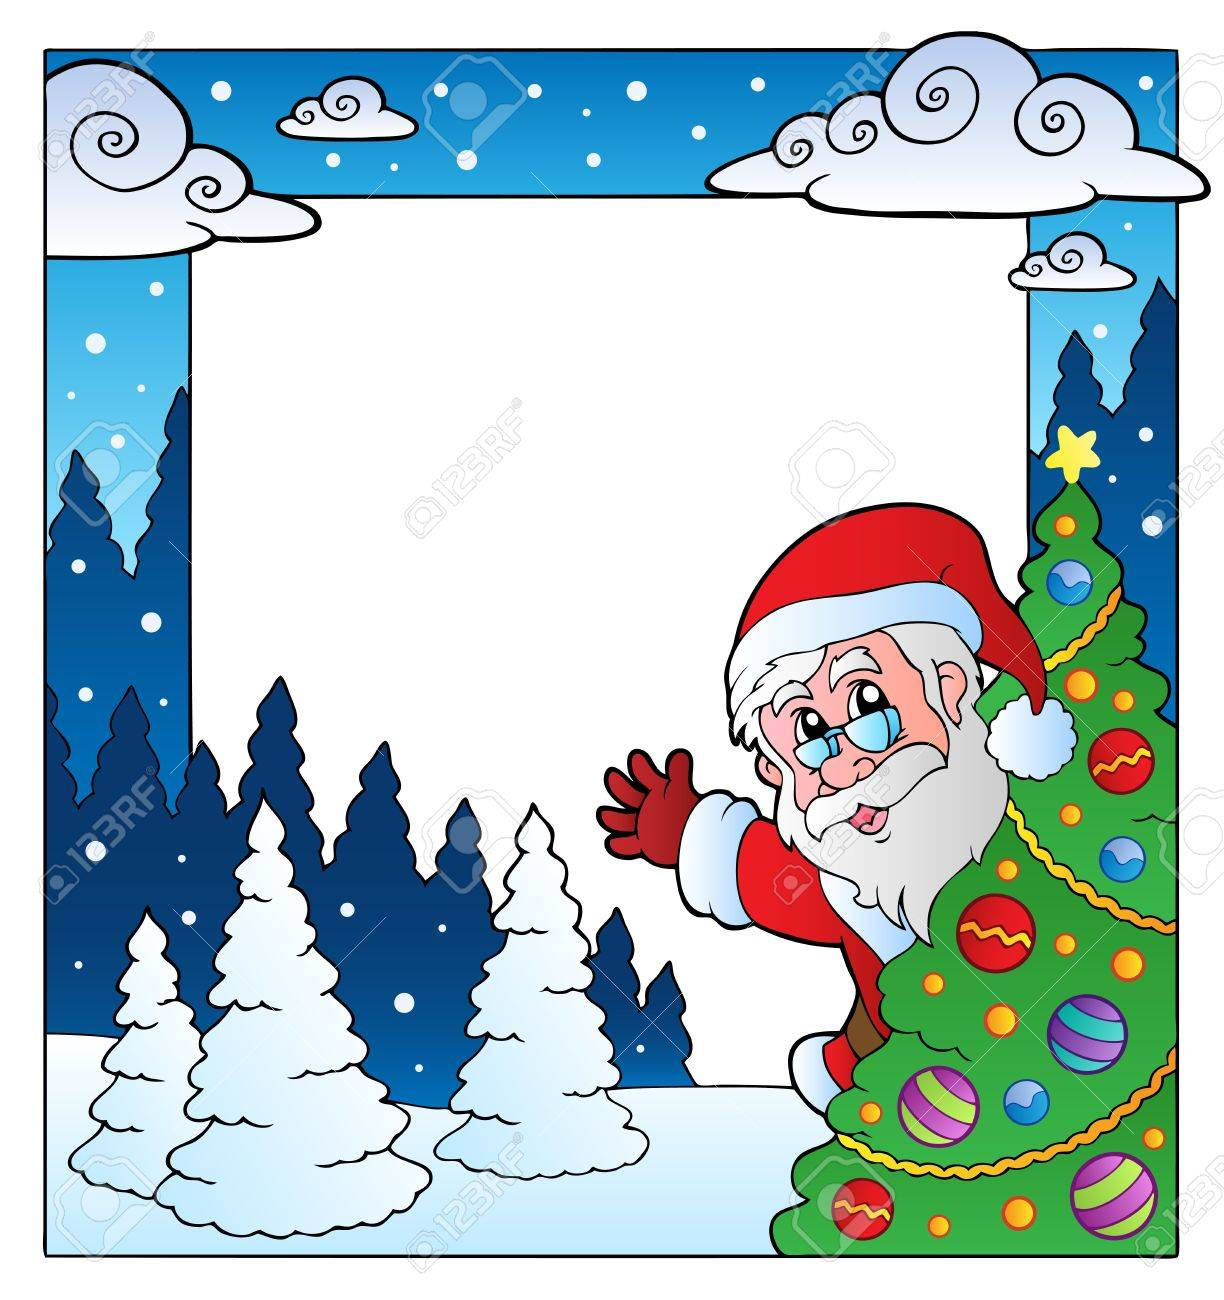 Christmas theme frame  illustration. Stock Vector - 11505351